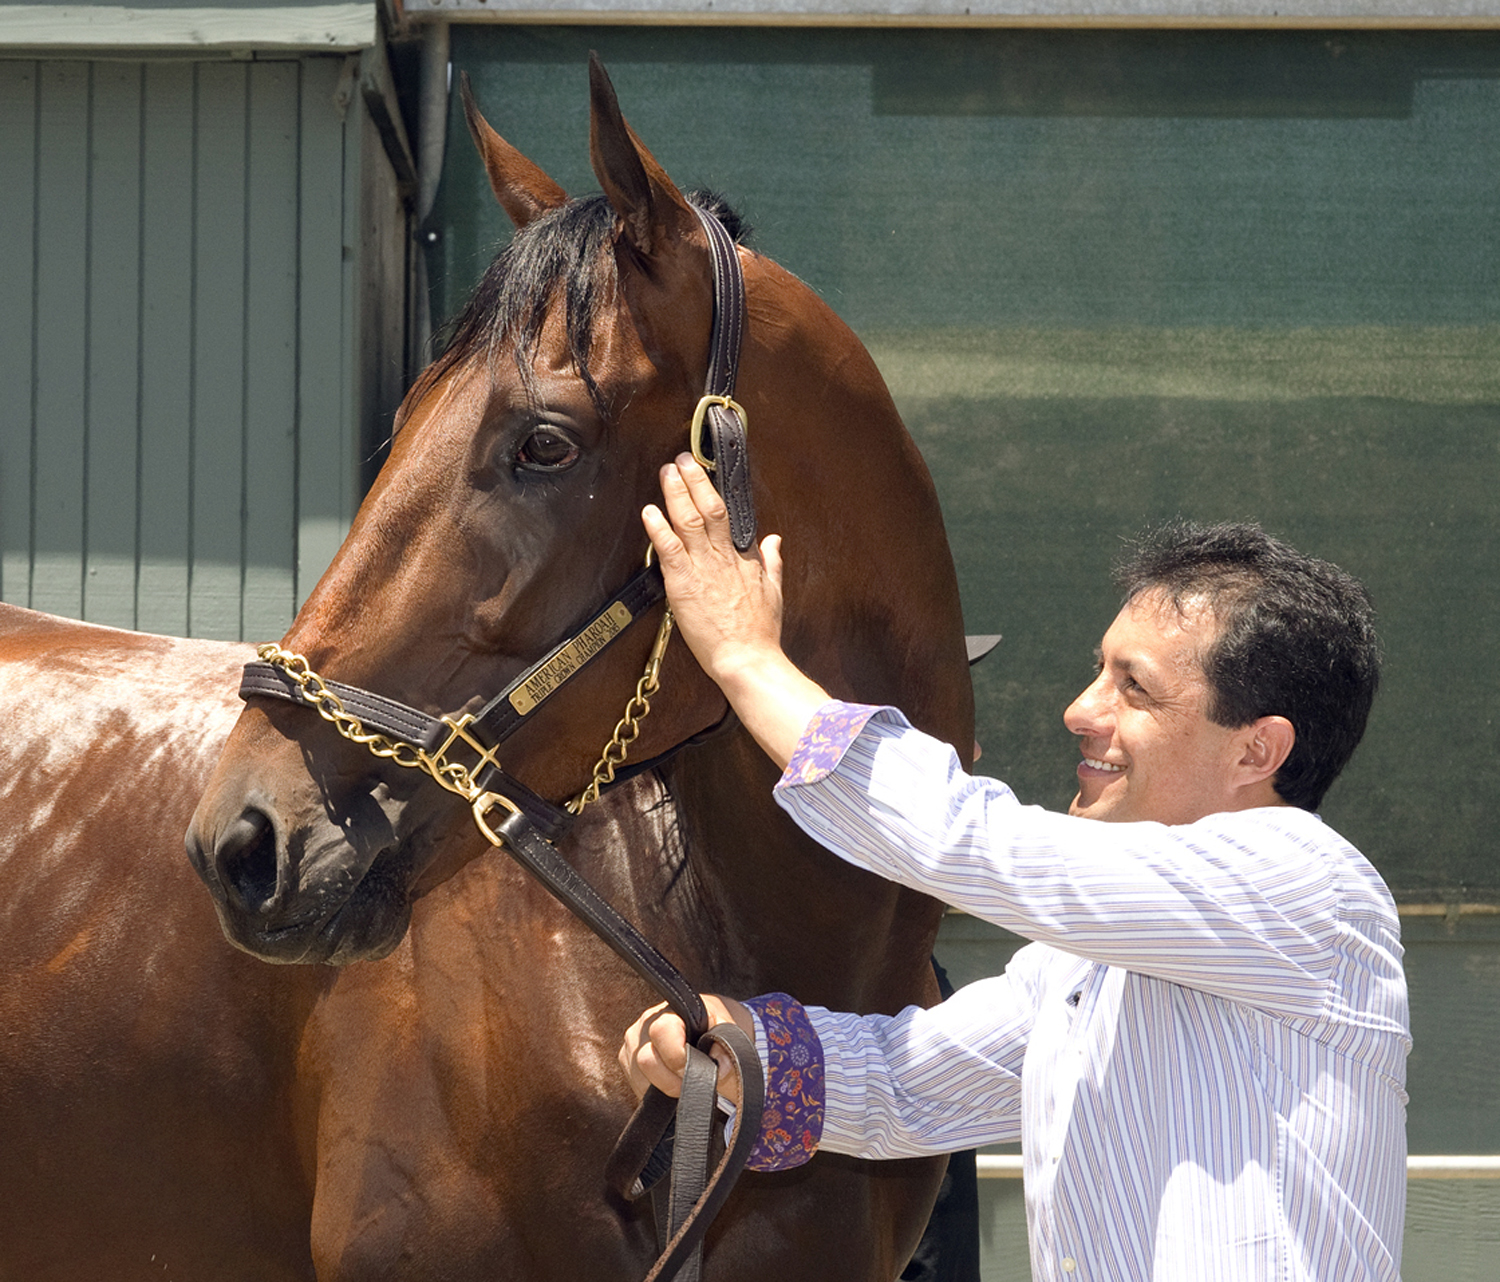 In a photo provided by Benoit Photo, jockey Victor Espinoza poses for photos with Triple Crown-winner American Pharoah on Thursday, June 18, 2015, at Santa Anita in Arcadia, Calif., after a flight from Kentucky and a police escort from the airport. (Benoi